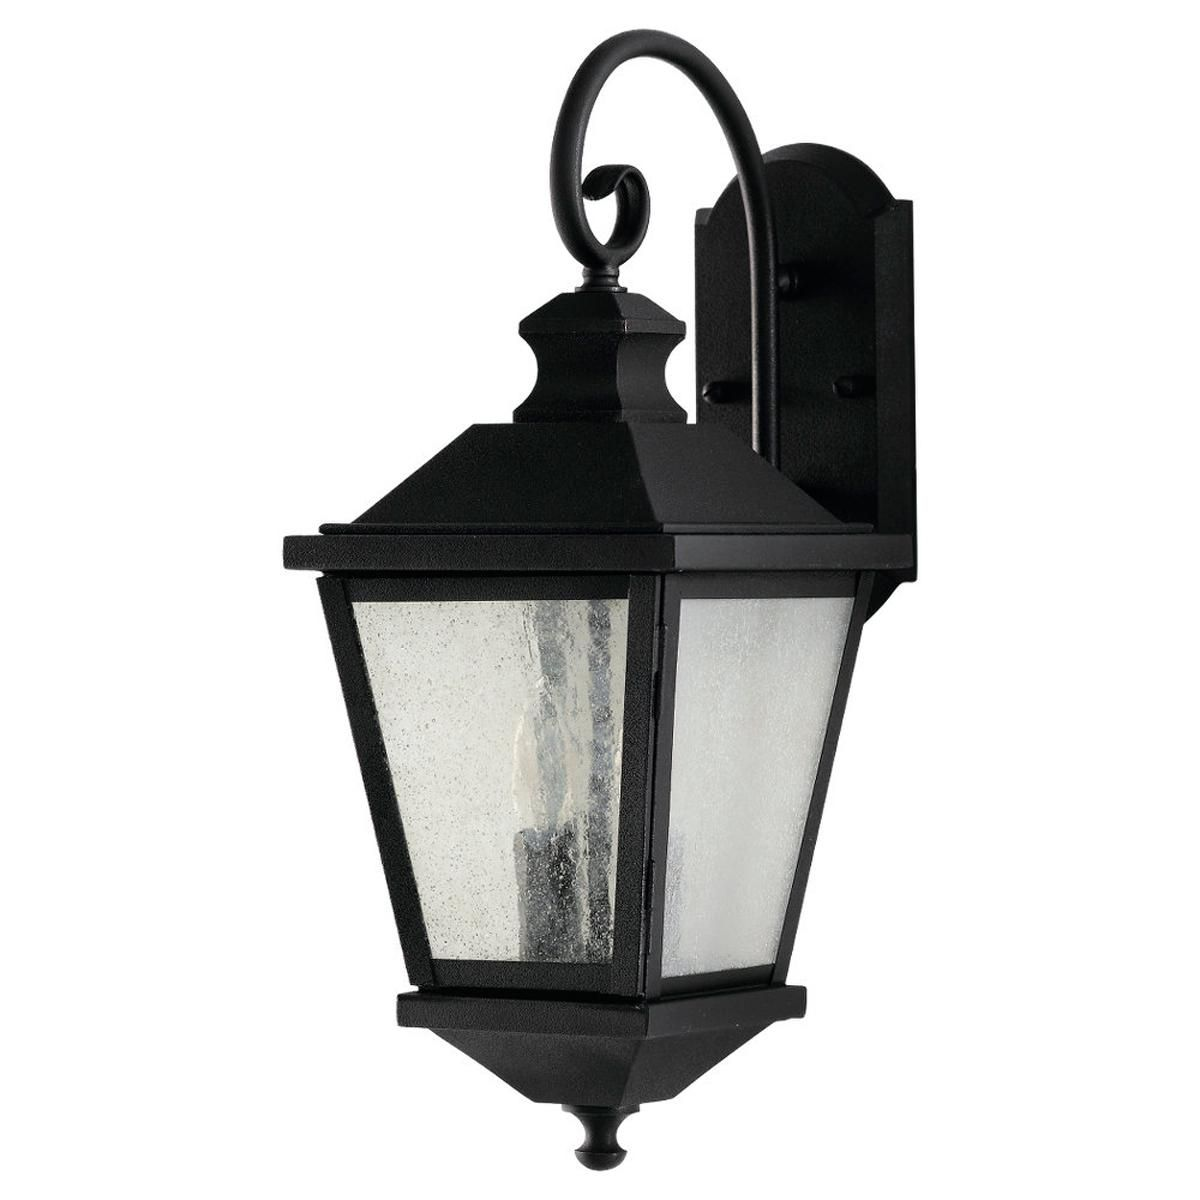 Timeless Traditional Colonial Wall Lantern 3 Sizes With A Timeless Traditional Style Reminiscent Of The C Wall Lantern Outdoor Sconces Outdoor Wall Lantern